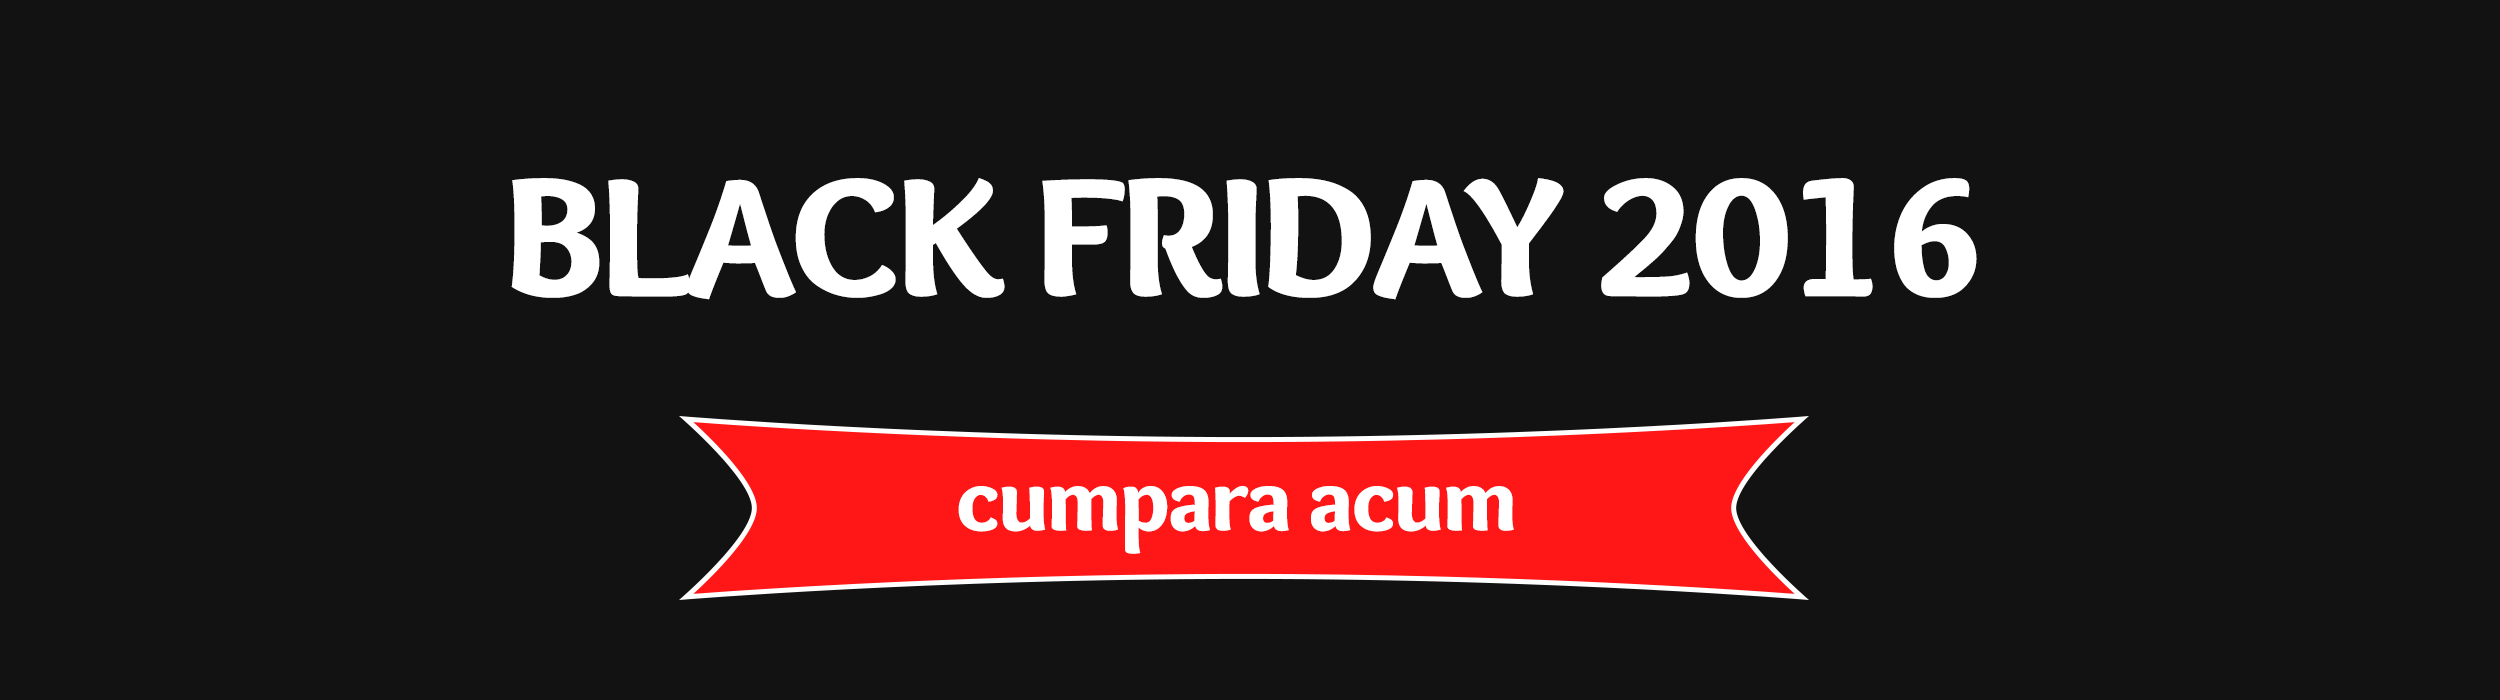 Black Friday 2016!